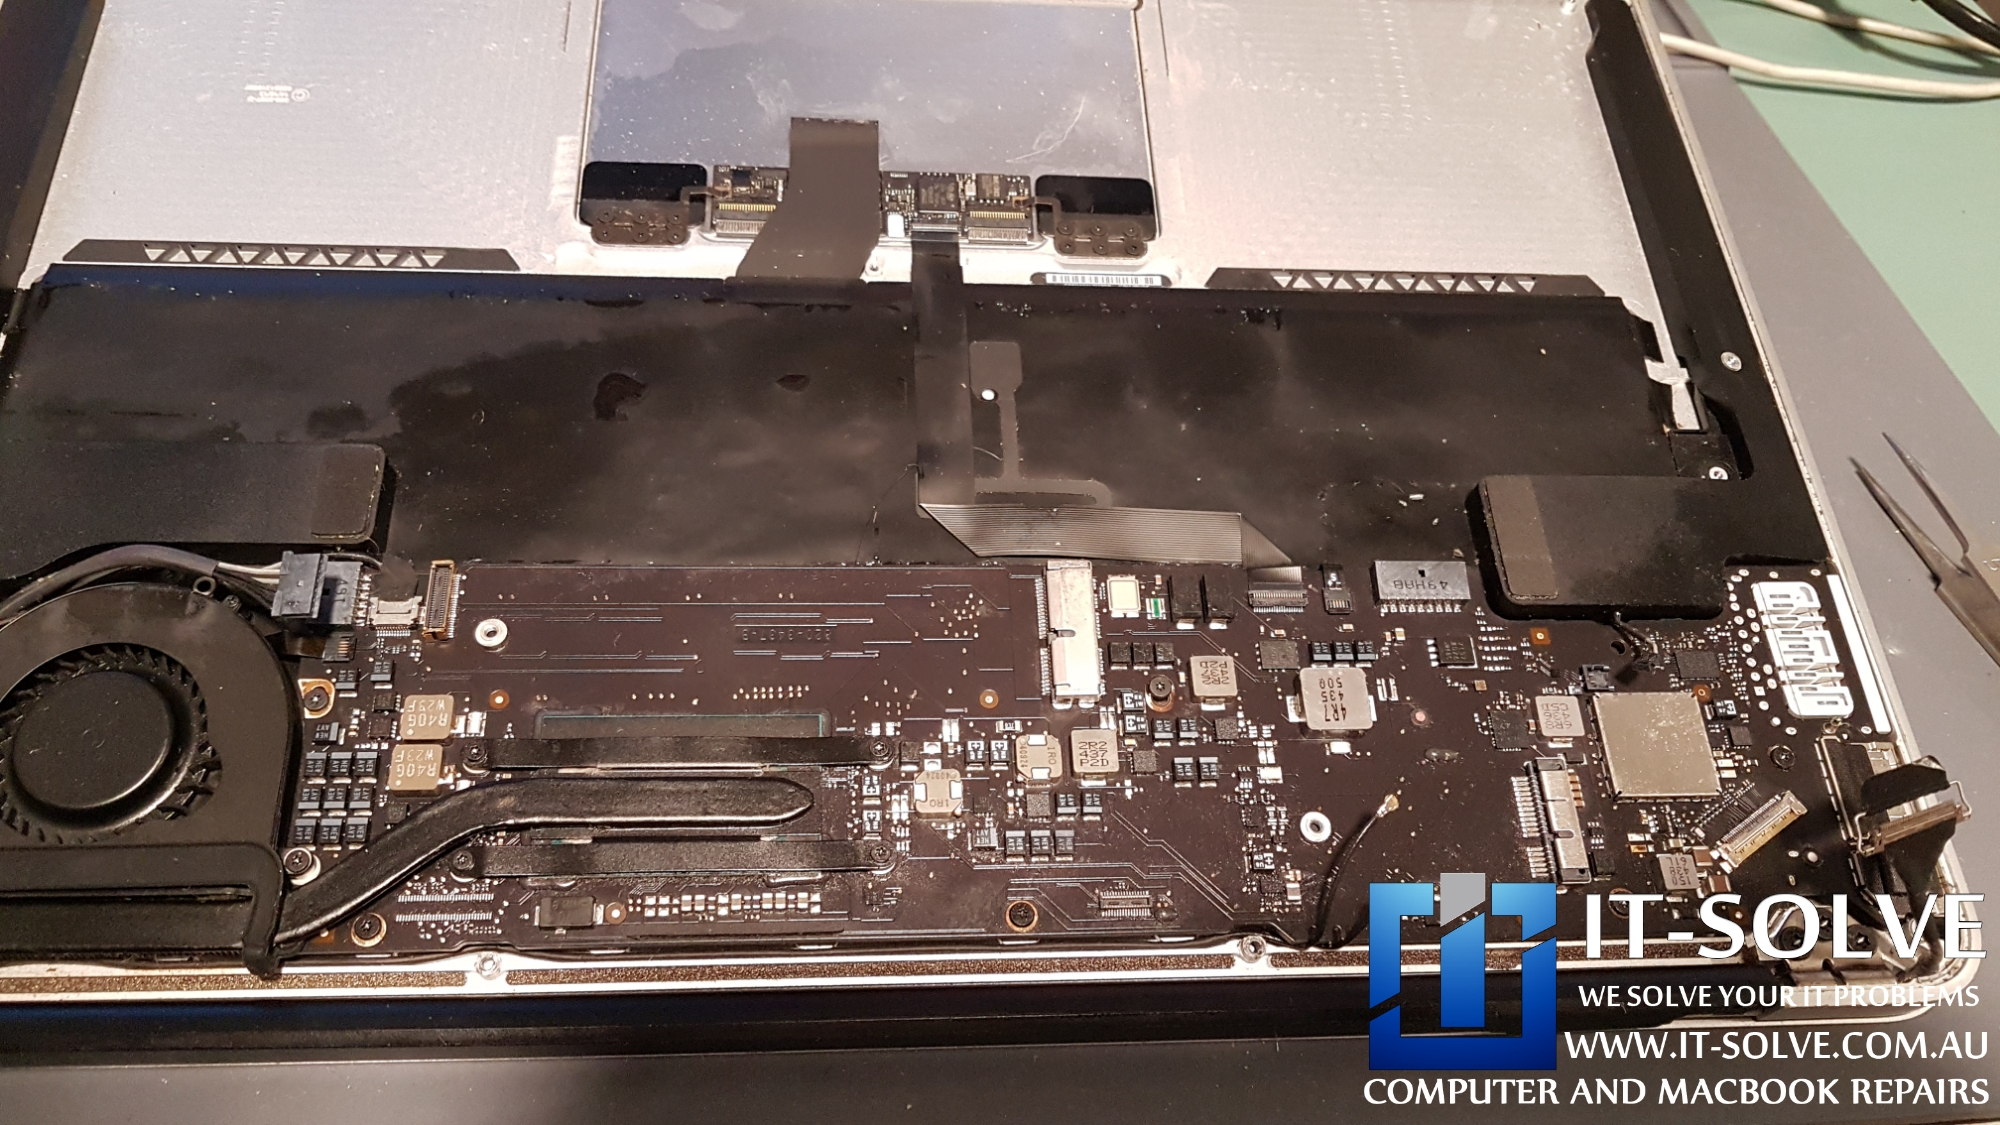 Macbook Air liquid damage repair